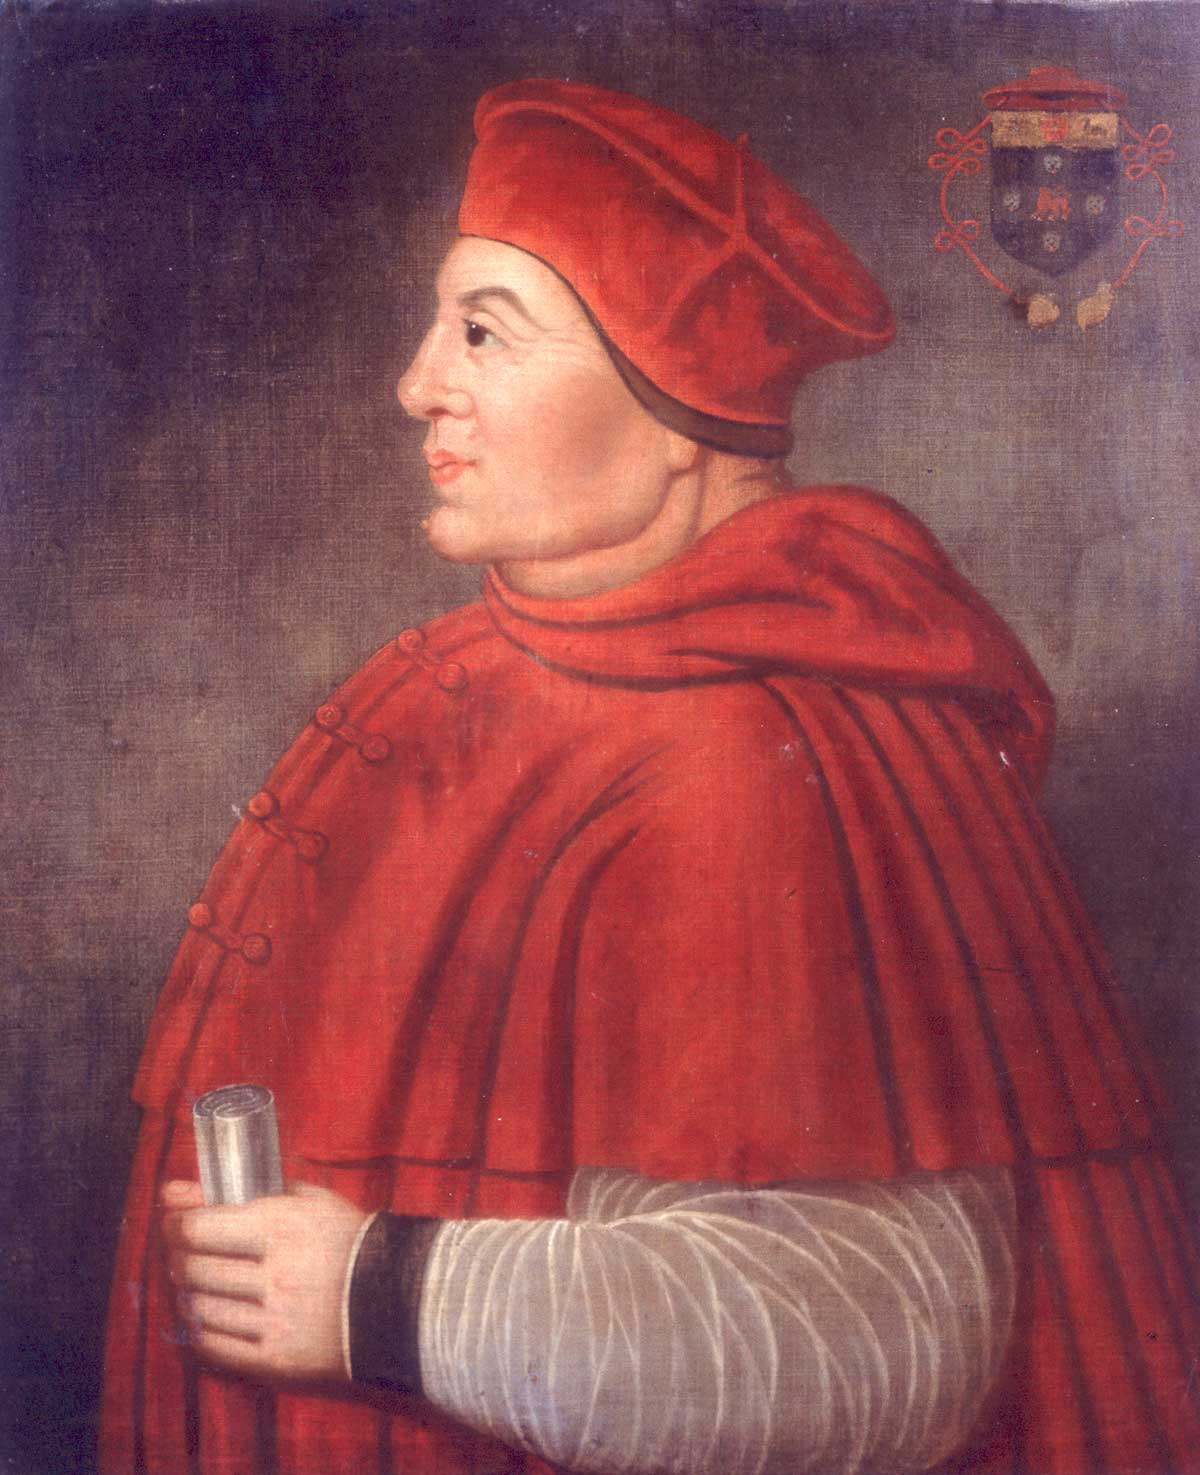 a portrait of Cardinal Wolsey in red robes and red skull cap